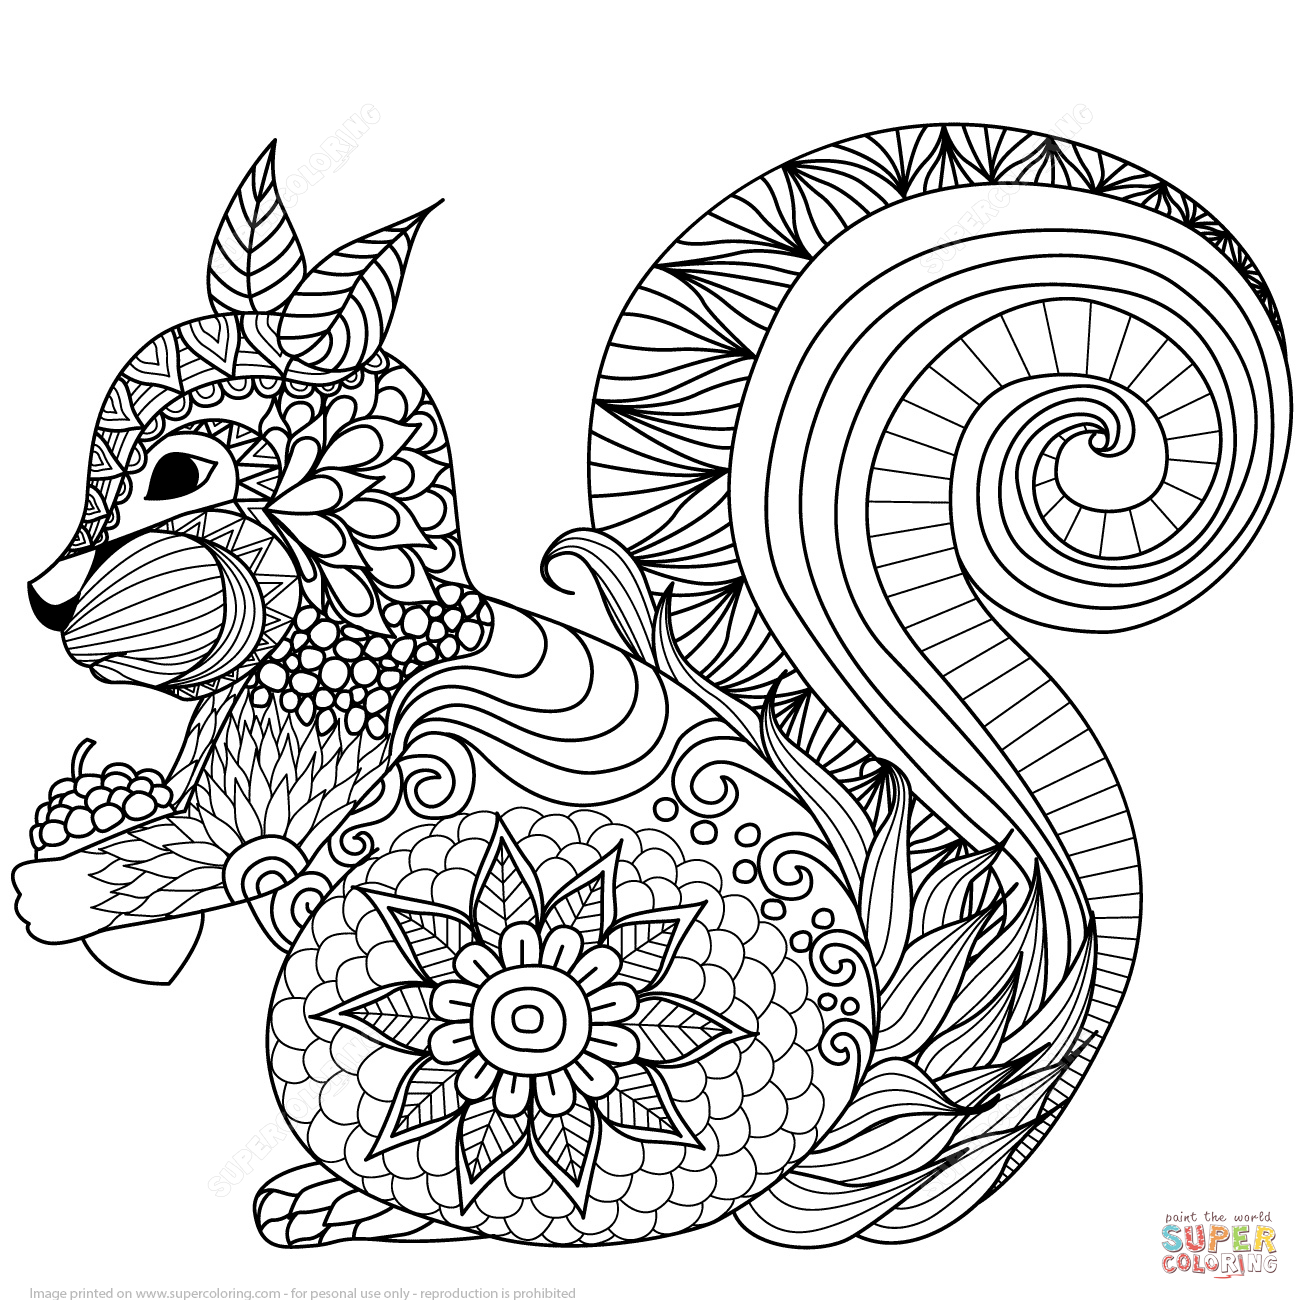 Zen coloring pages printable - Zen Coloring Pages Printable 55